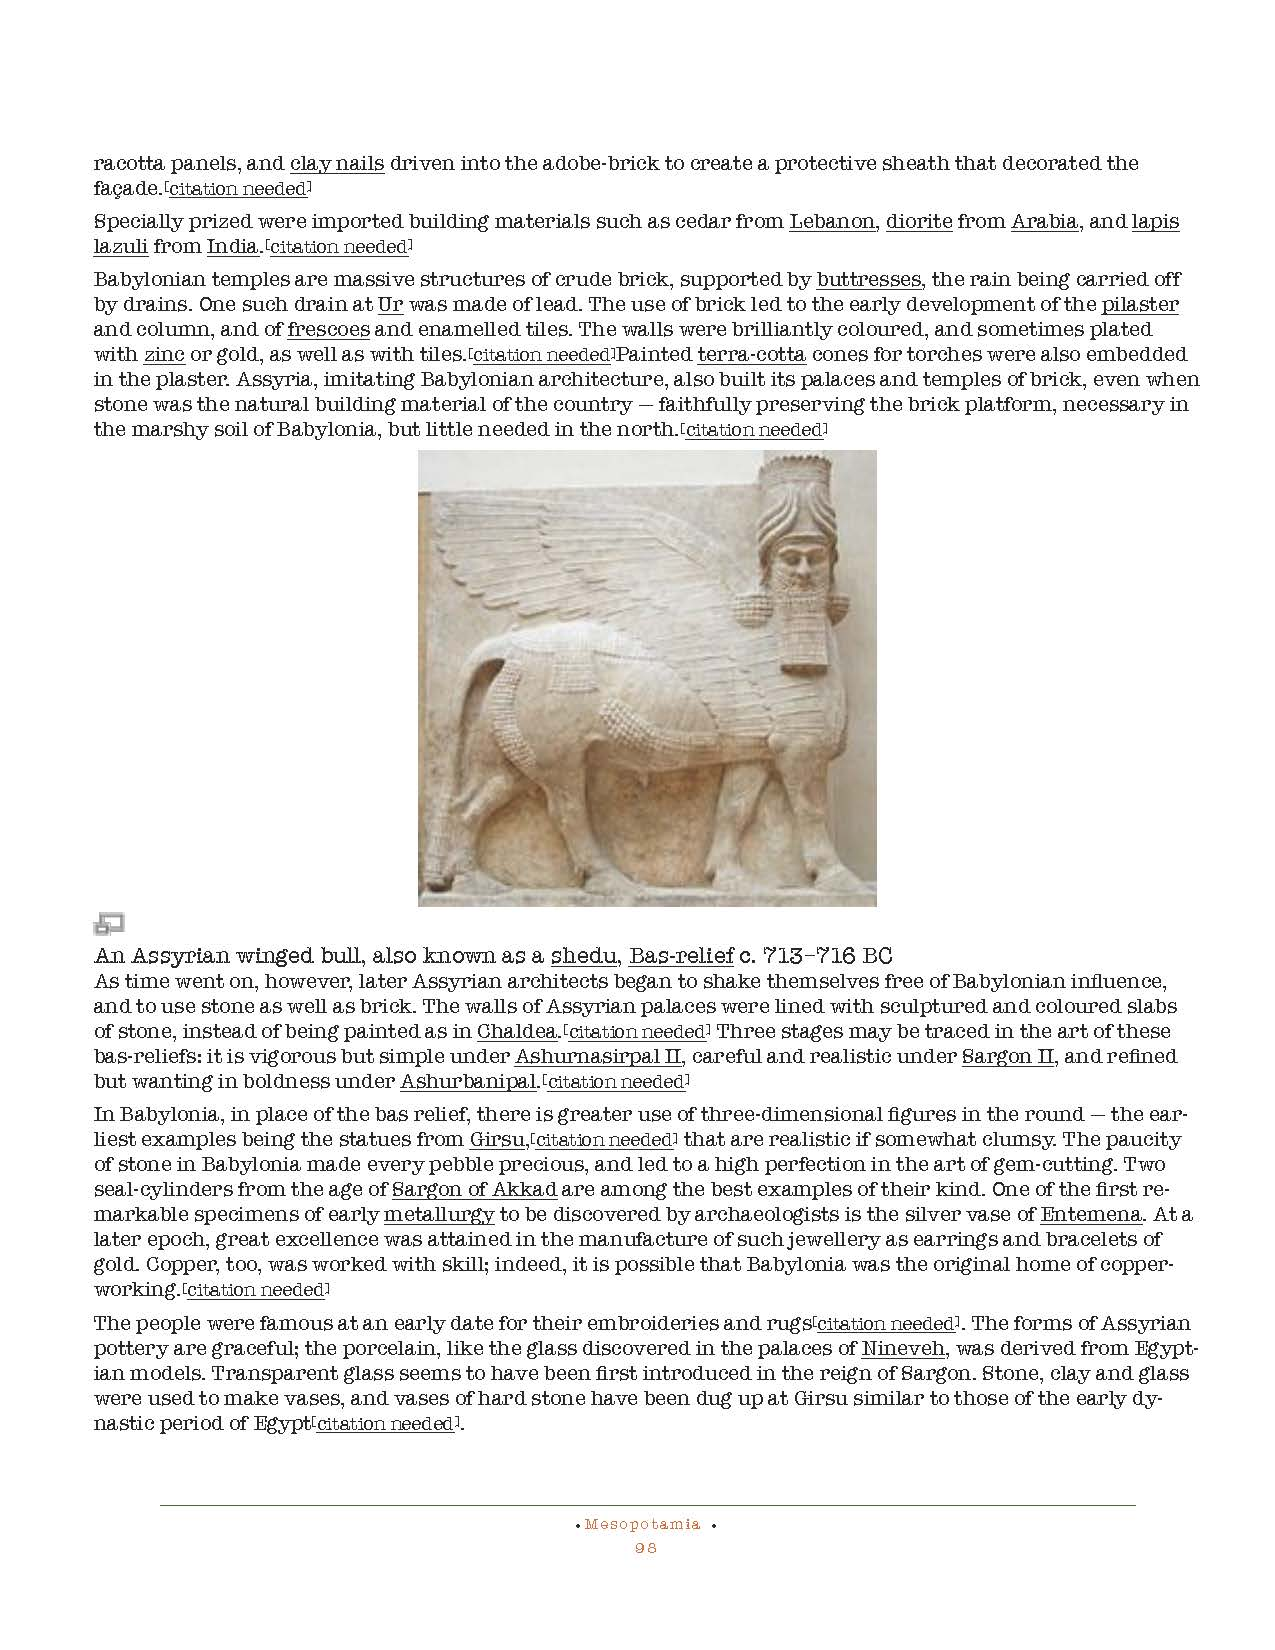 HOCE- Fertile Crescent Notes_Page_098.jpg